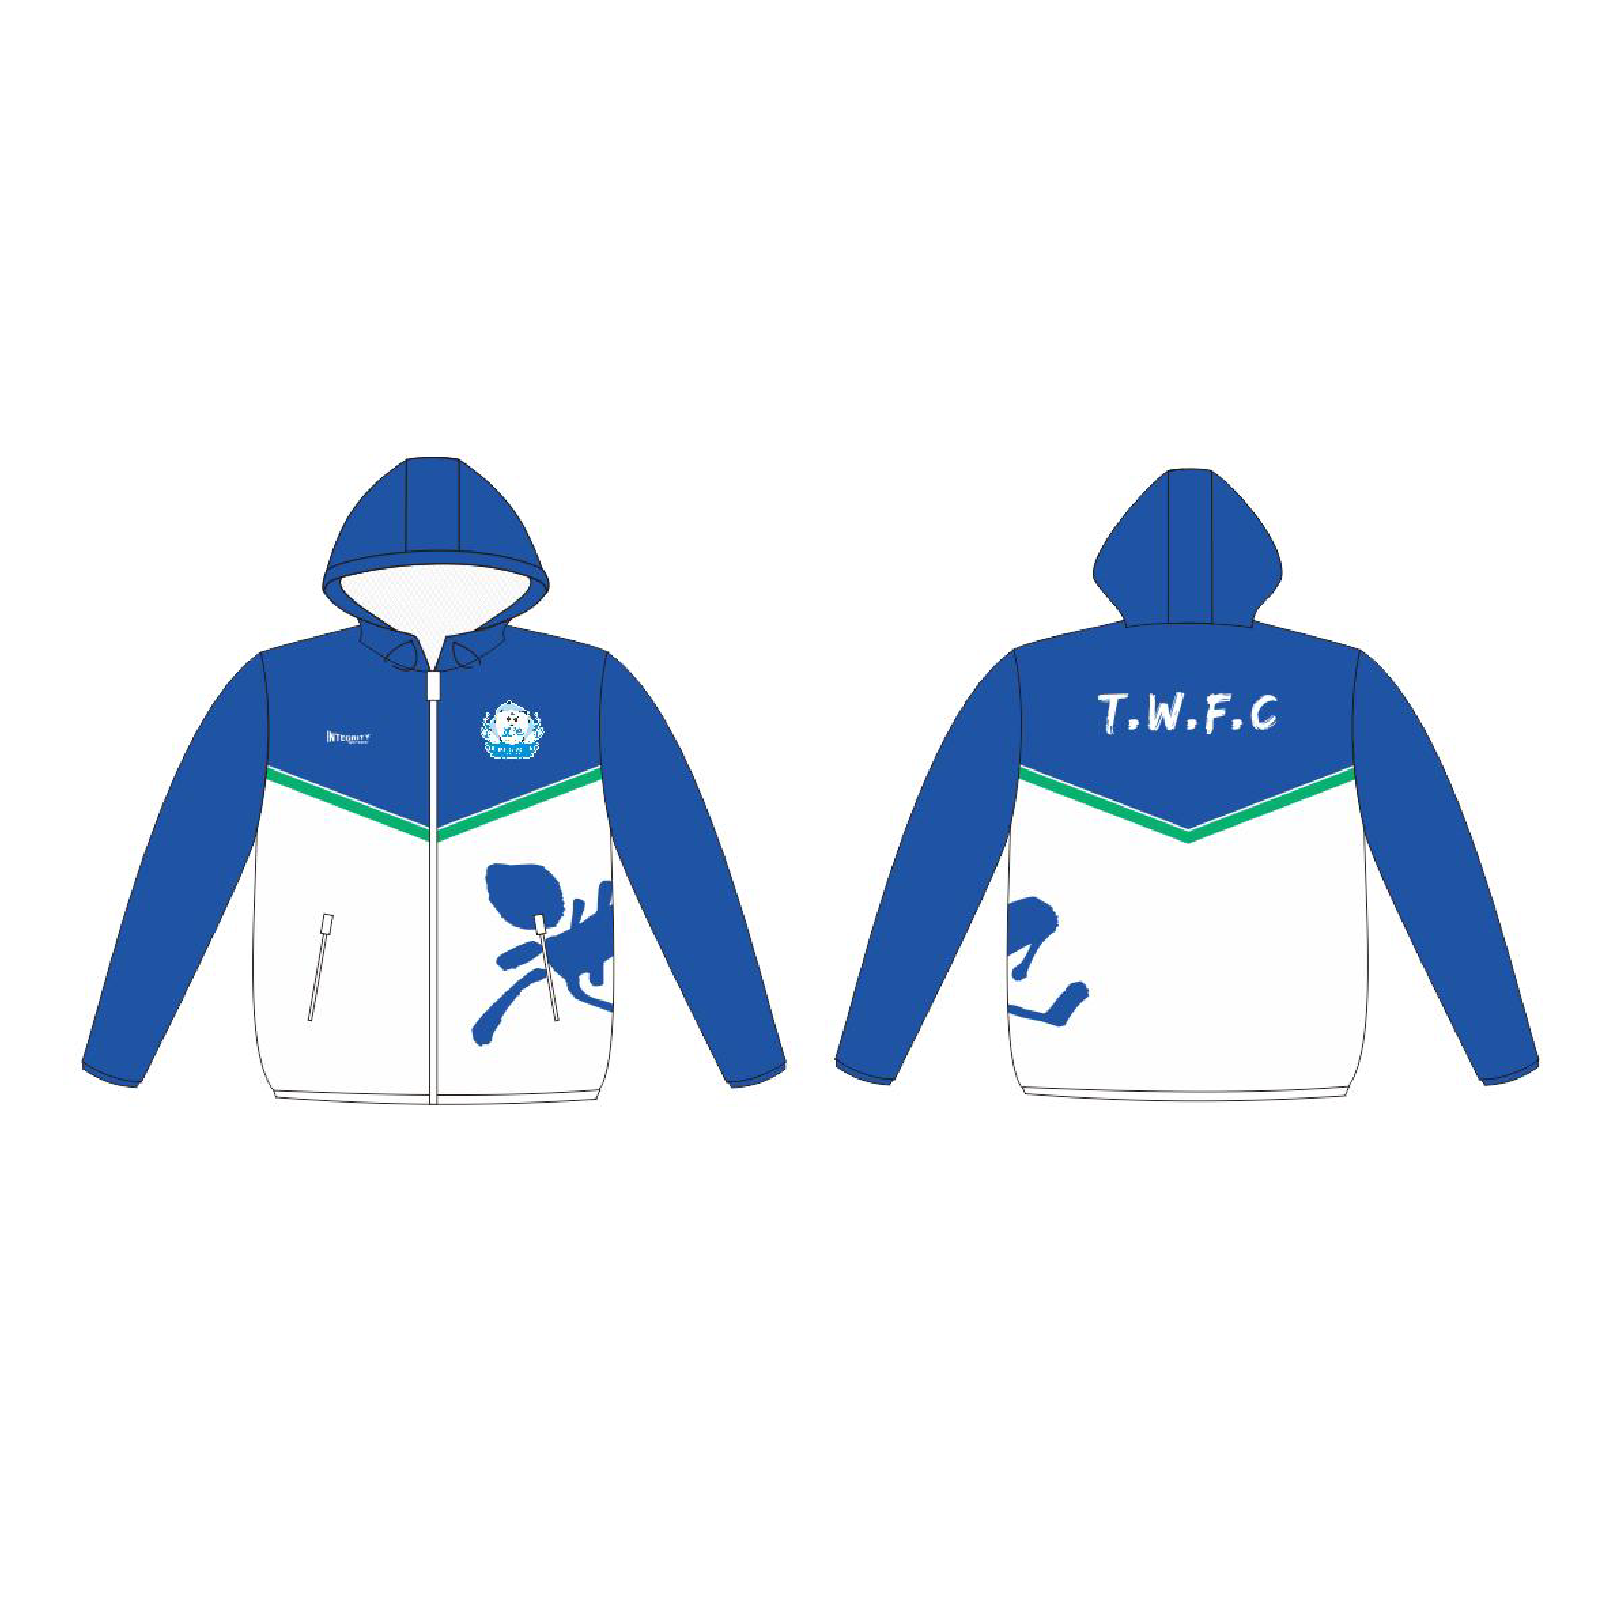 Jacket6png-01.png